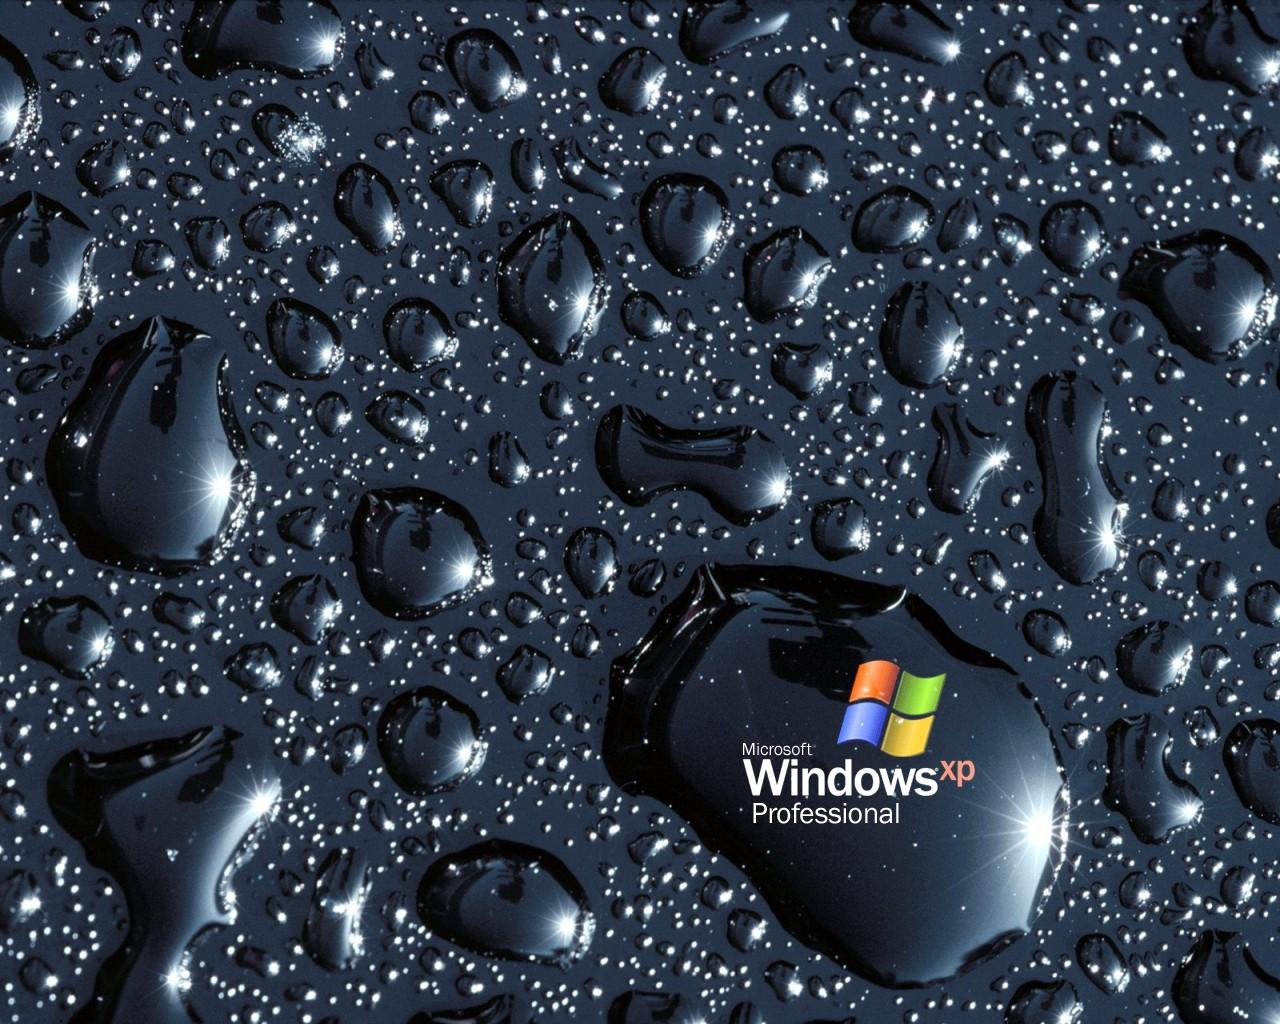 Free MSN Wallpapers And Themes